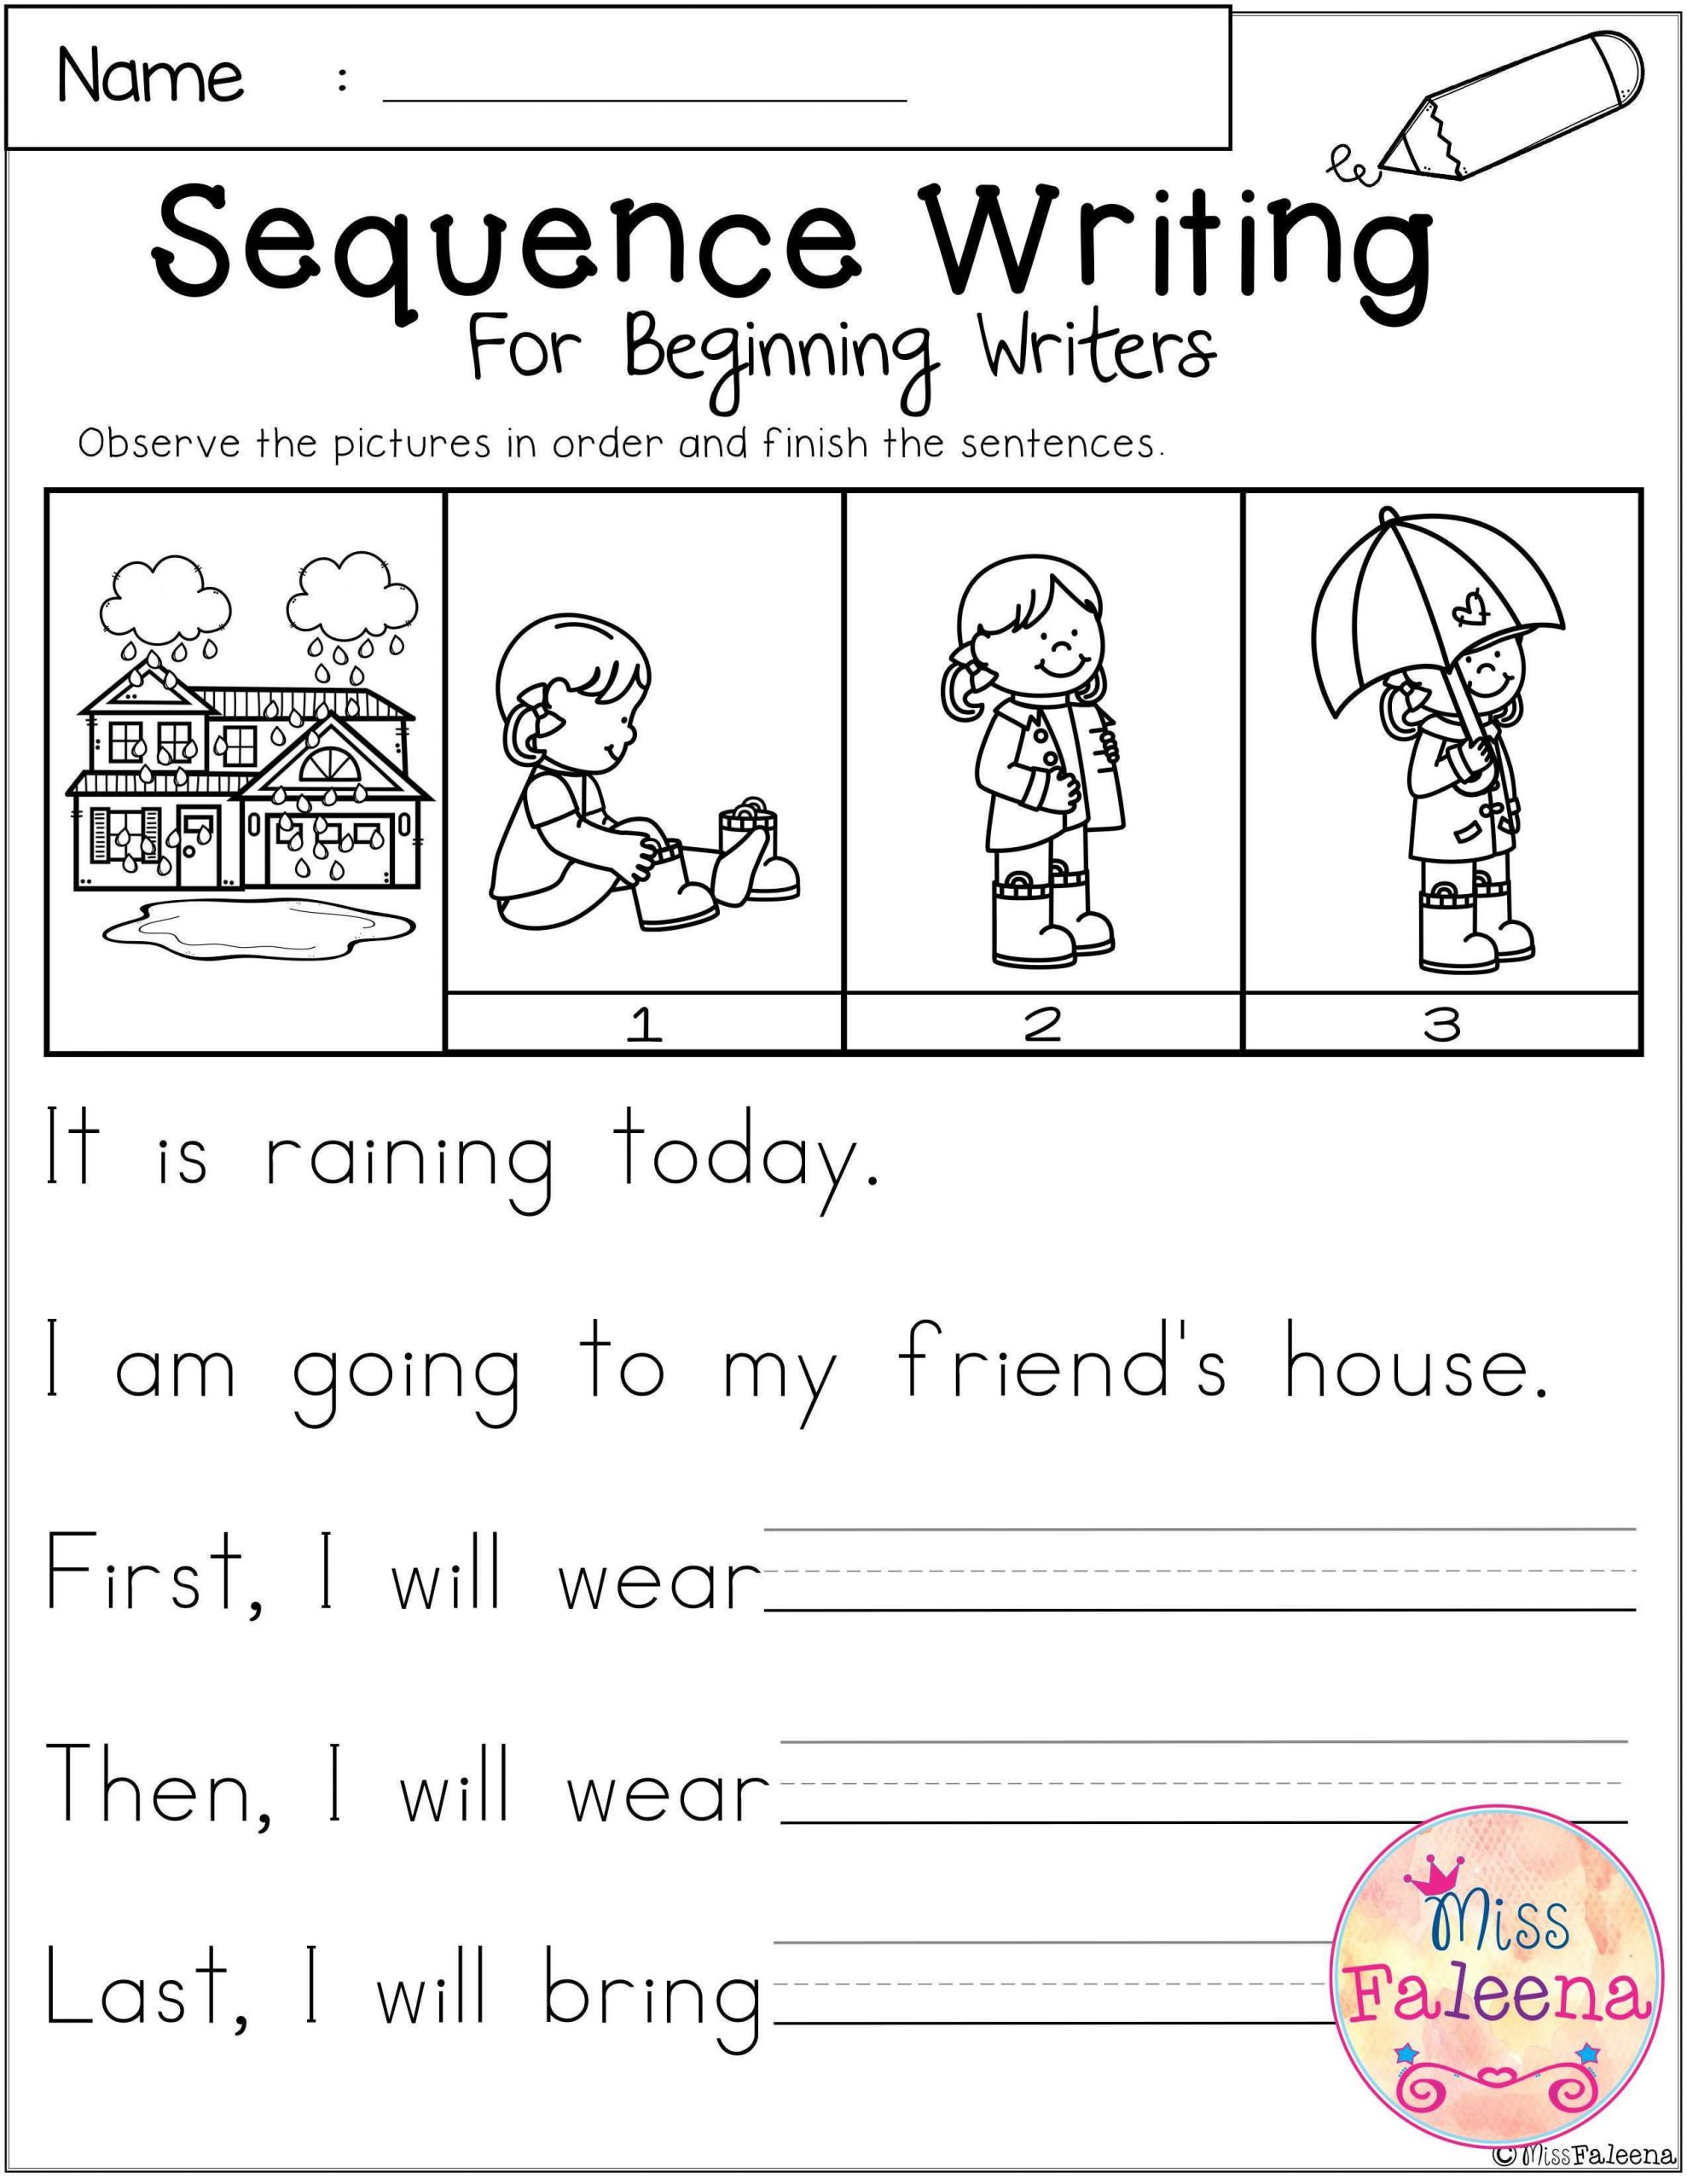 Sequencing Worksheet First Grade March Sequence Writing for Beginning Writers